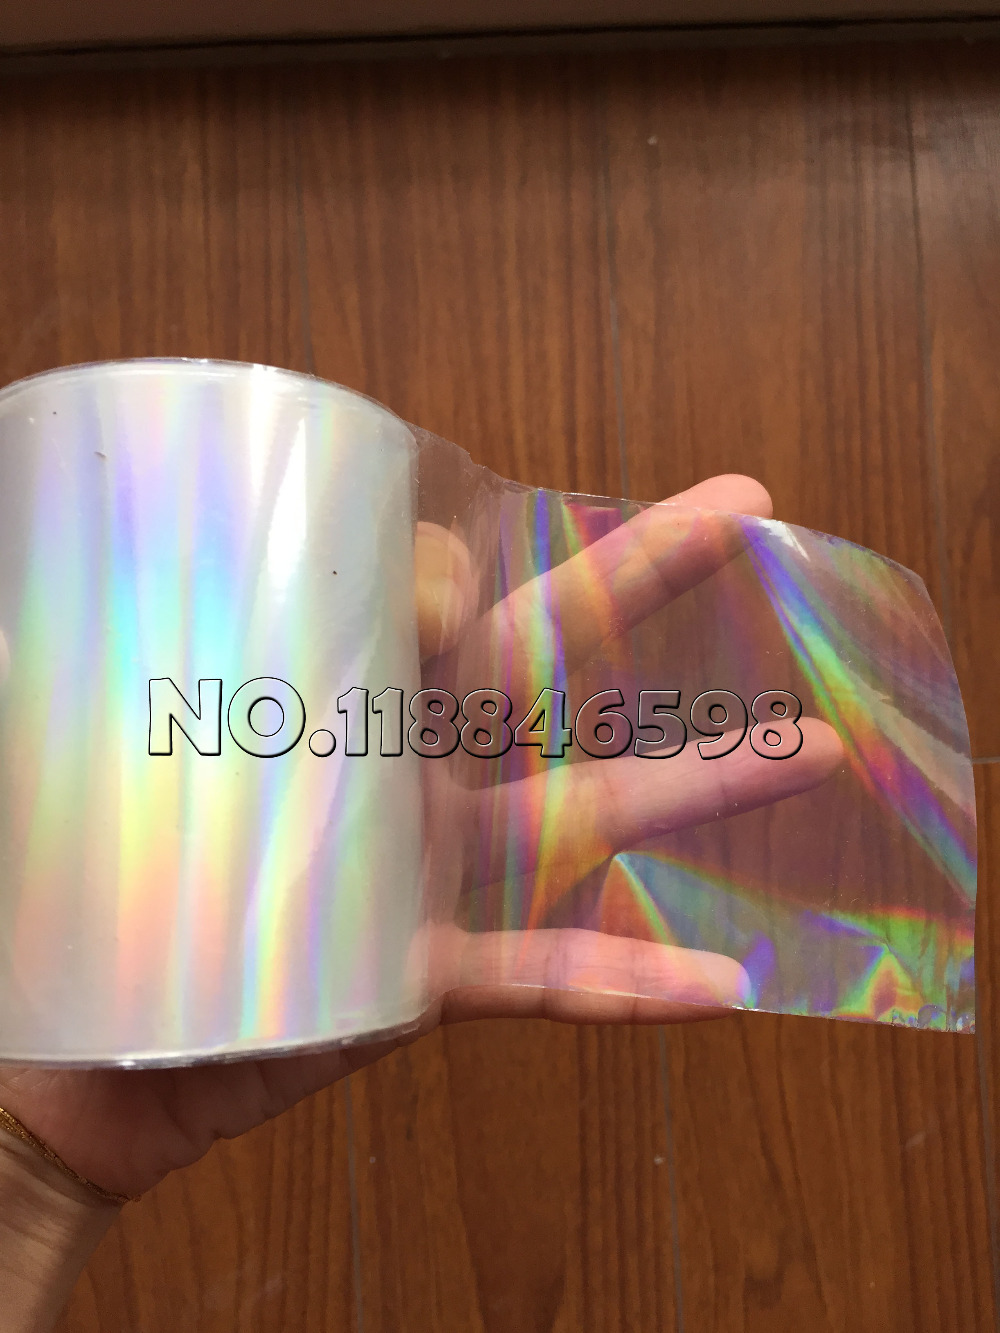 New Style Holographic Foil Plain Transparent Foil Hot Stamping On Paper Or Plastic 8cm X 120m/Lot DIY Package Box